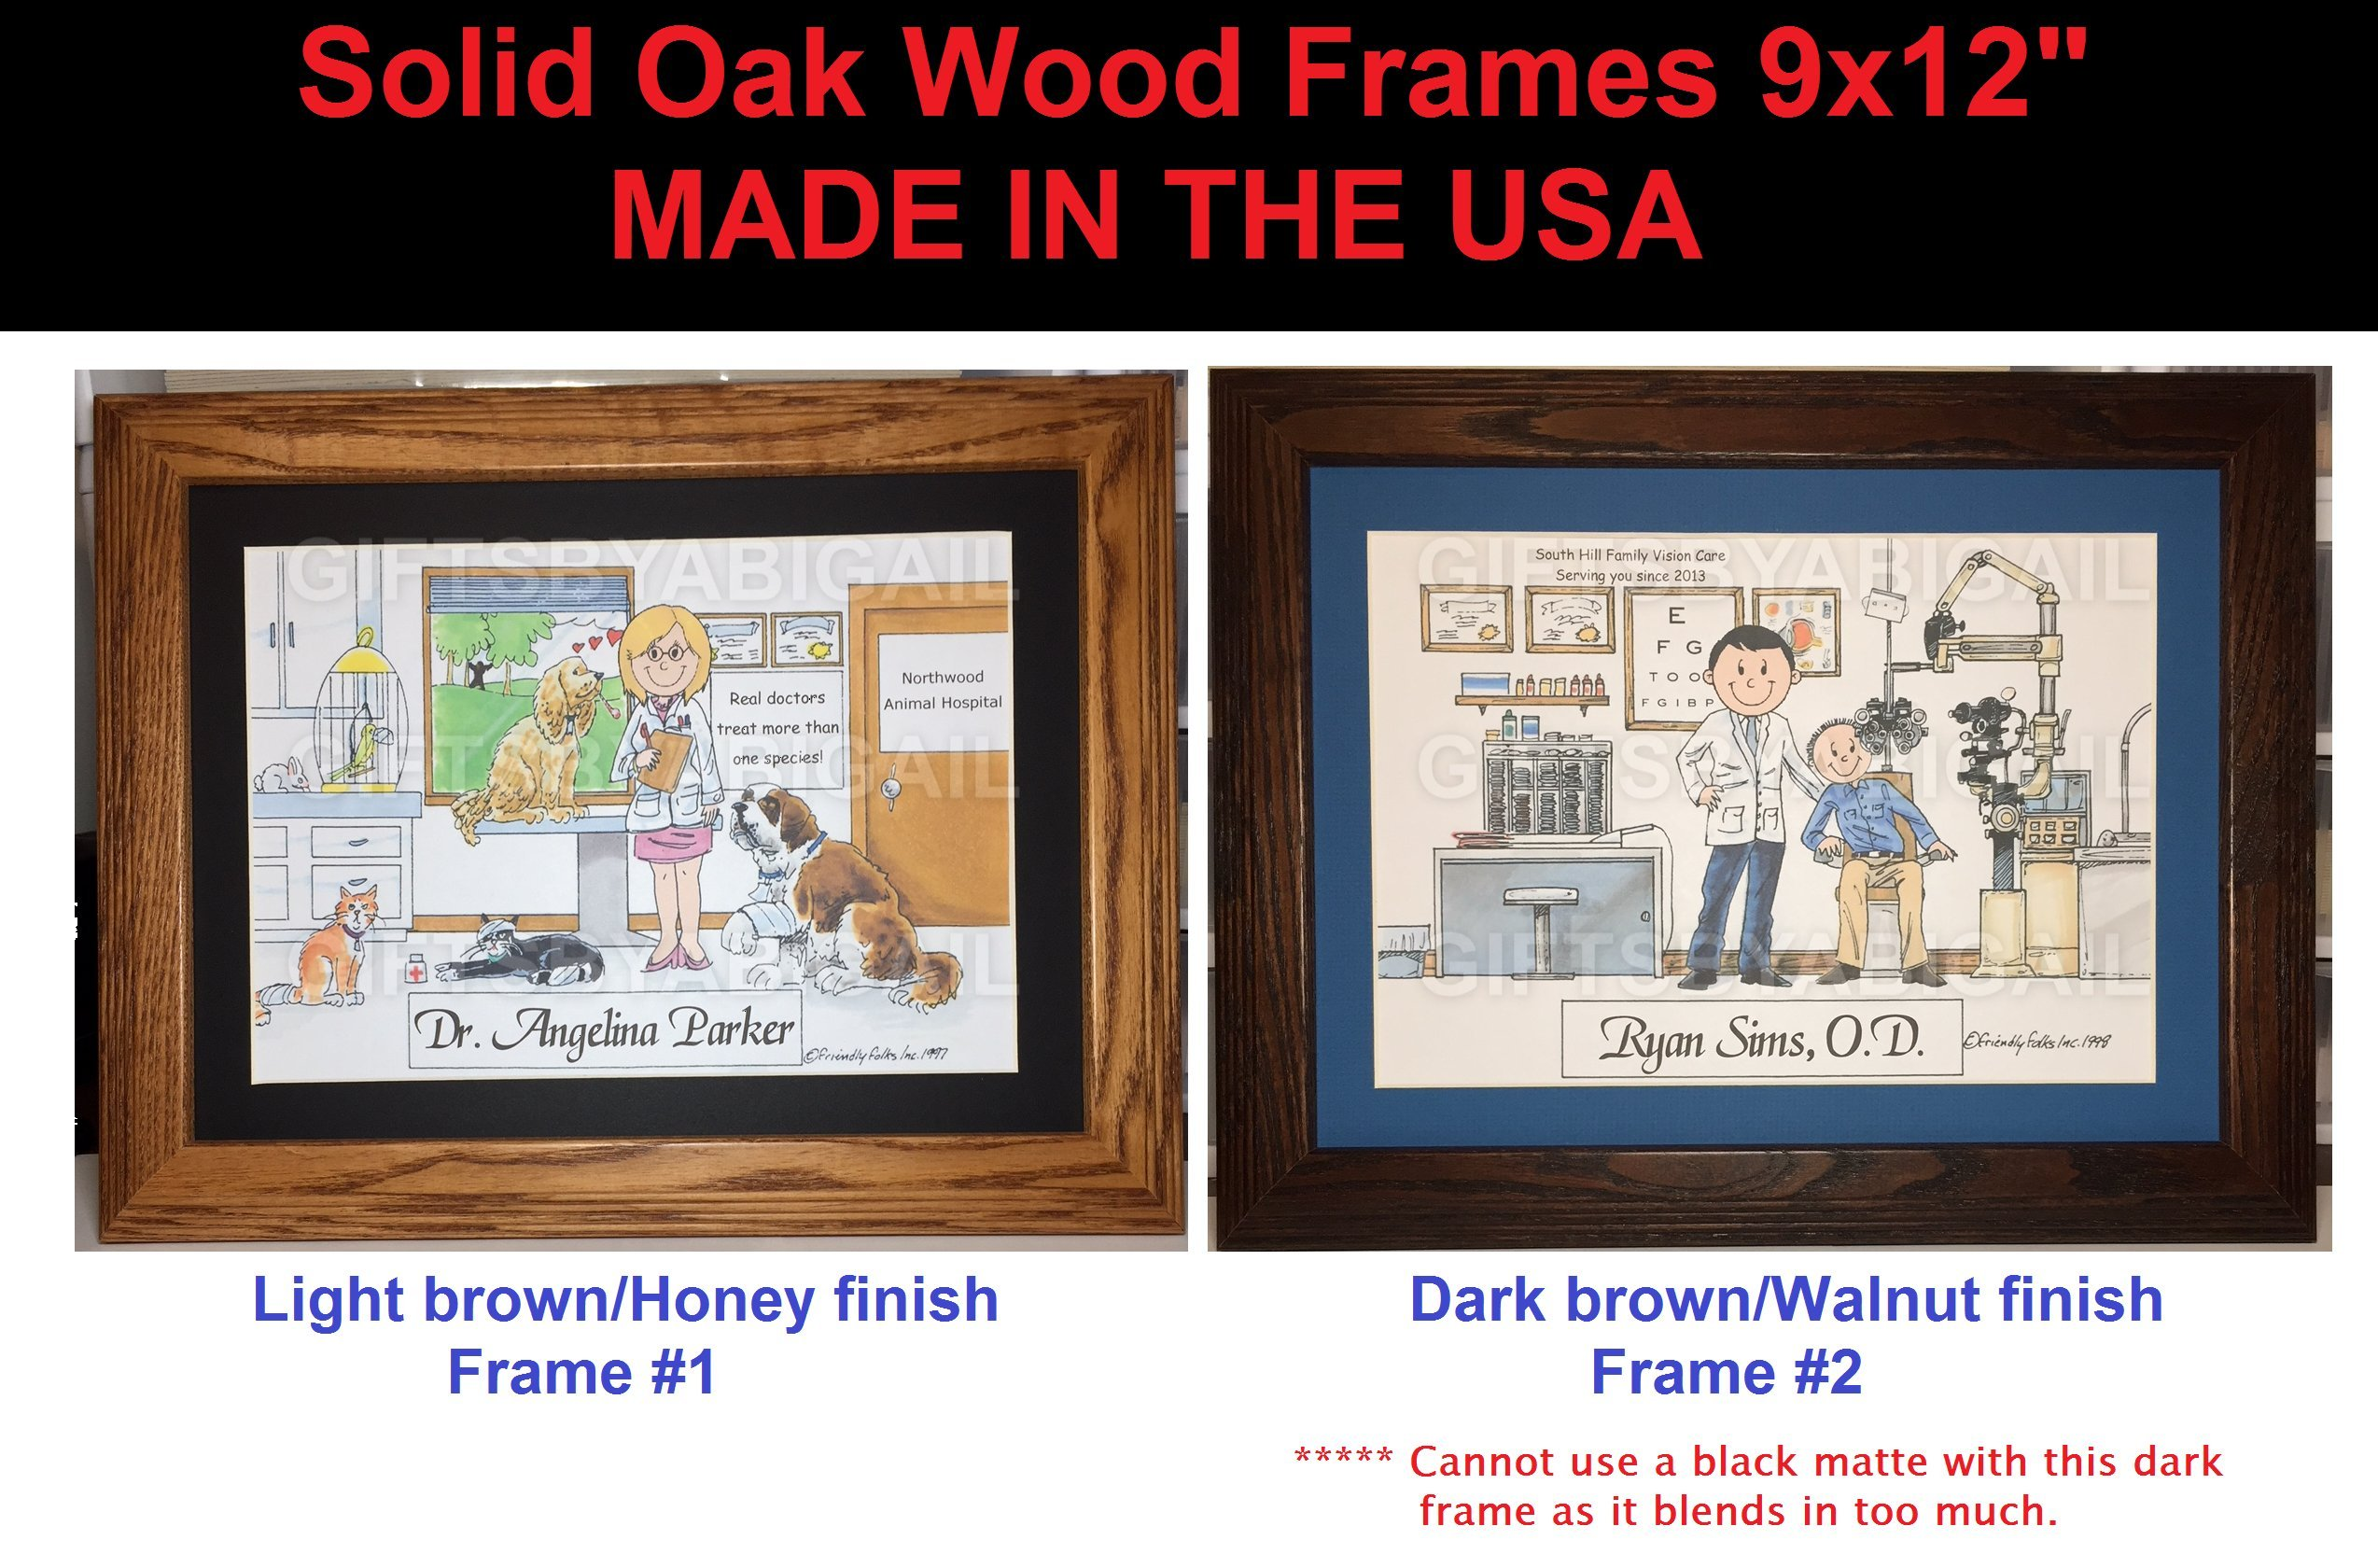 Solid Oak Wood Frame upgrade for personalized print